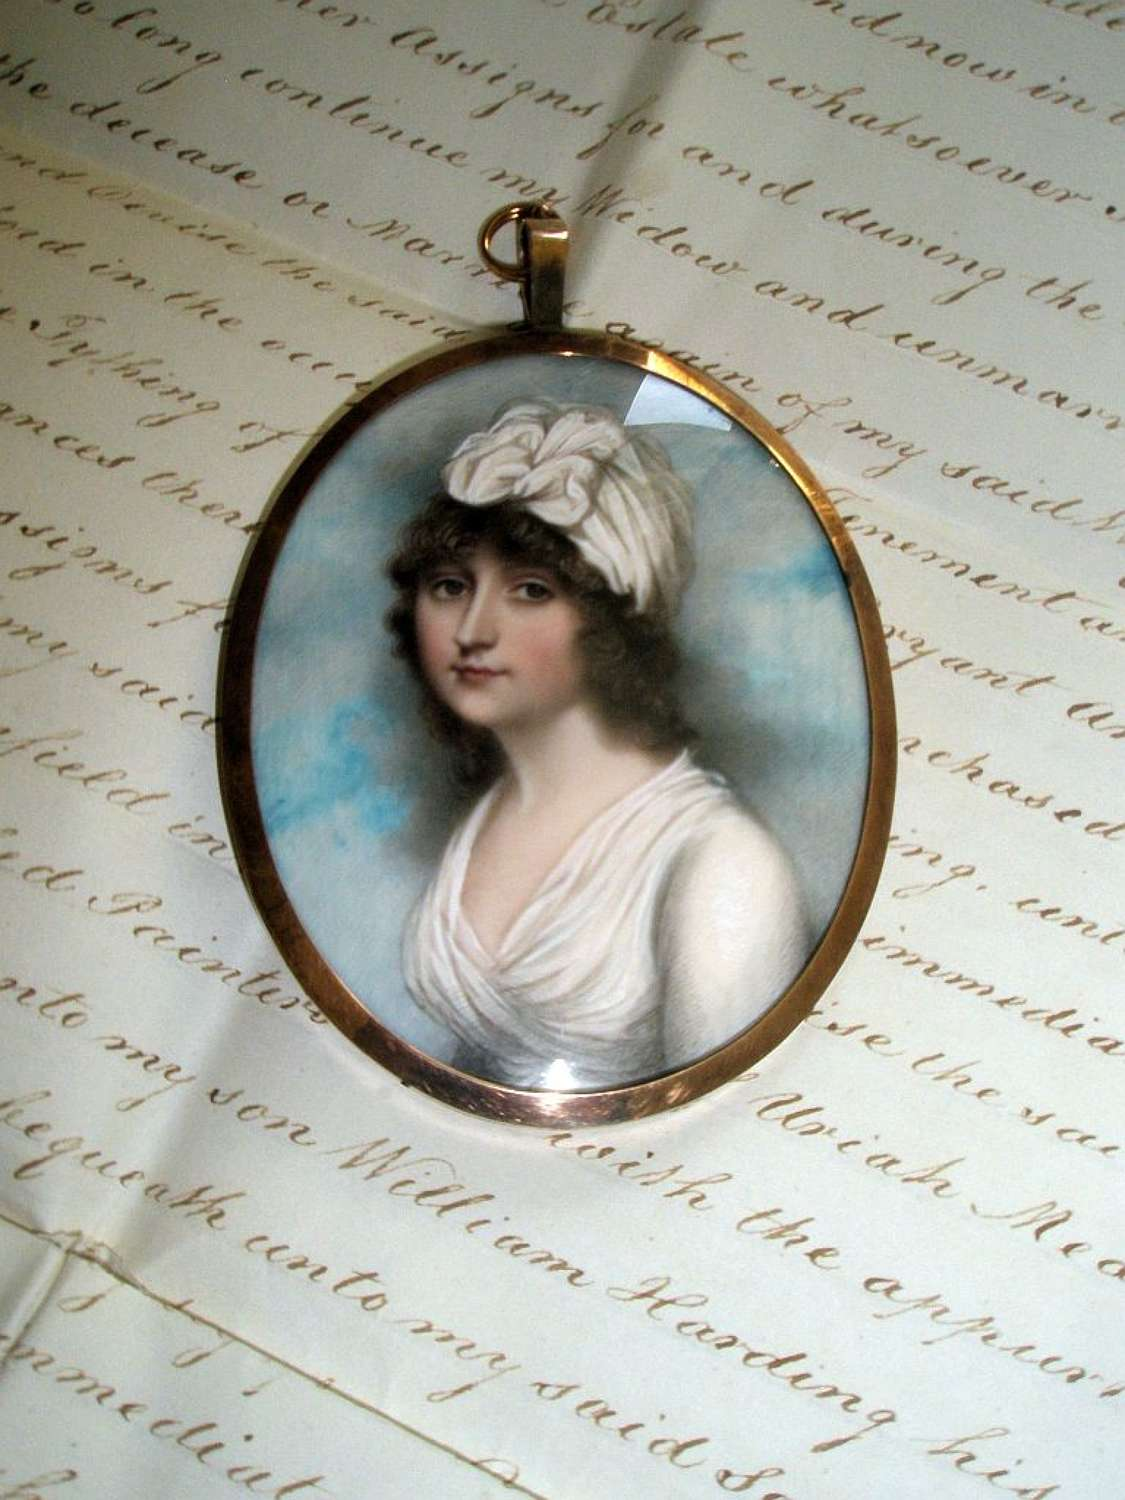 Superb portrait miniature of a young lady byAndrew Plimer ca.1795